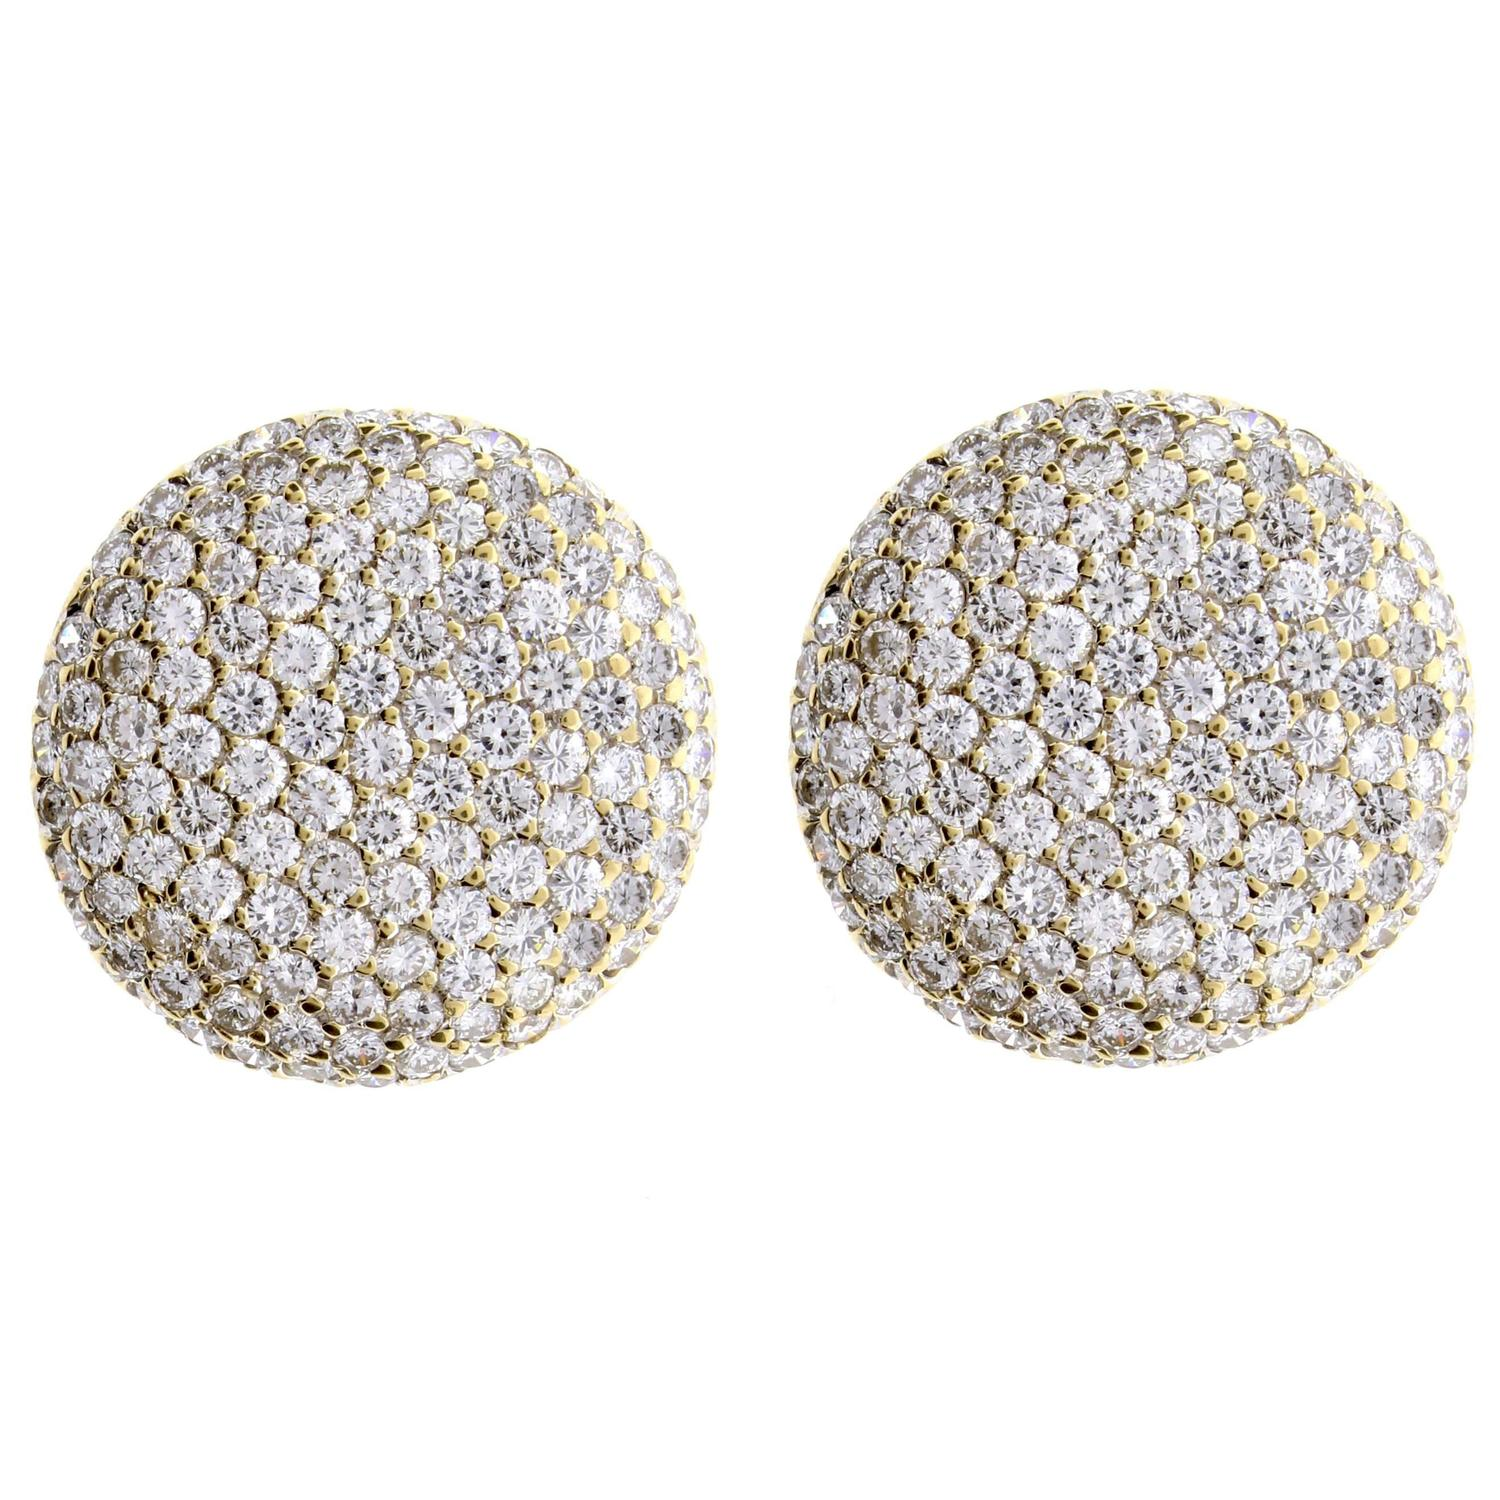 Cartier Pavé Diamond Gold Button Earrings For Sale at 1stdibs